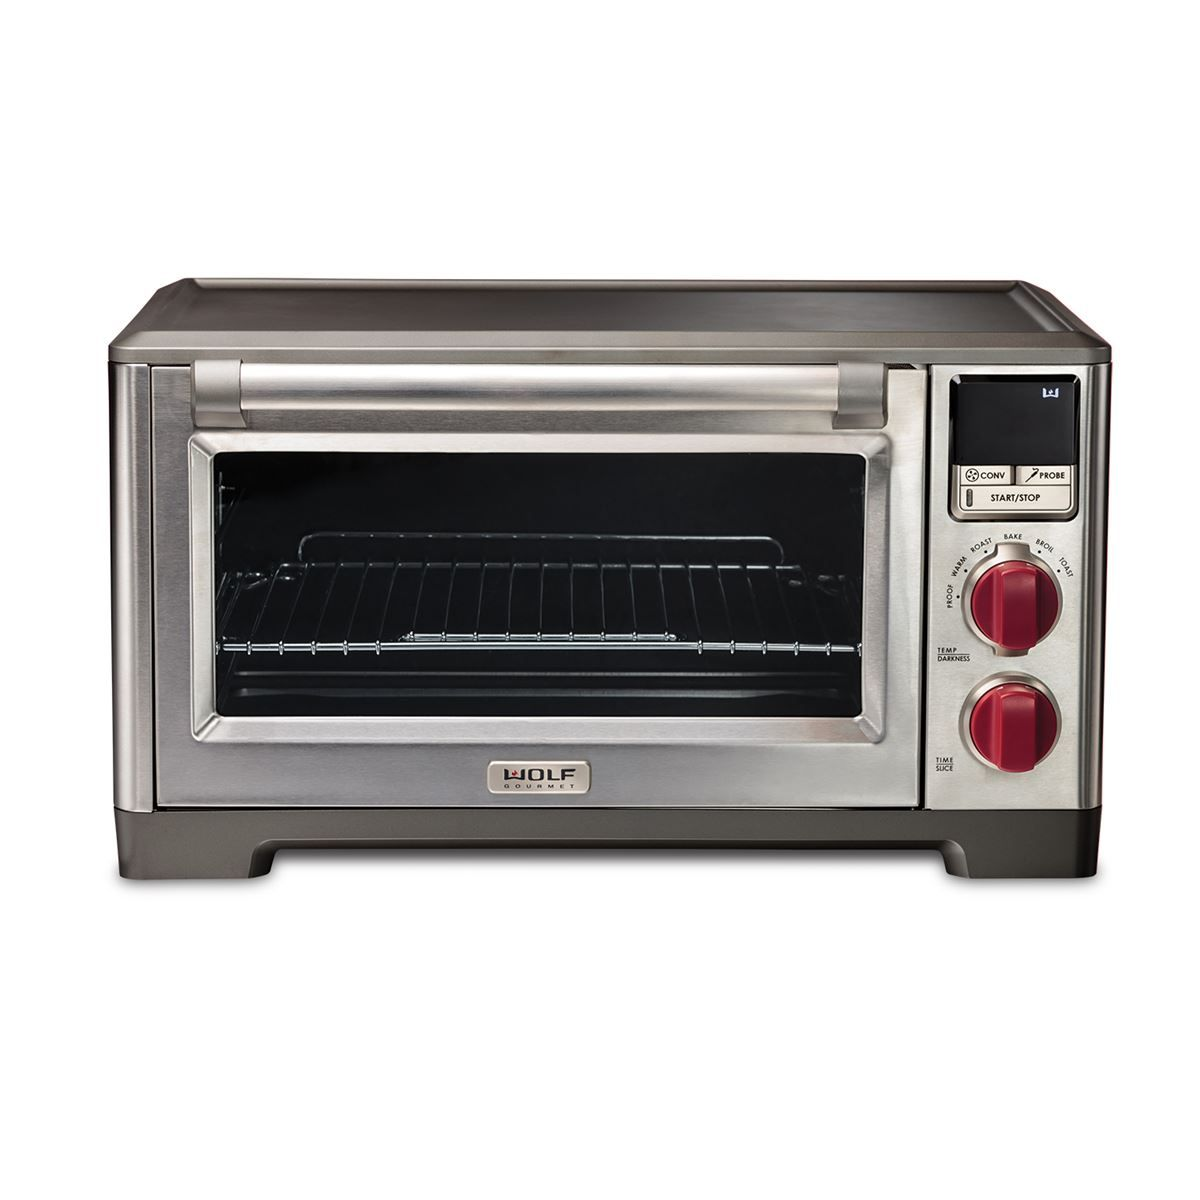 Wolf Gourmet Countertop Oven Review Countertop Oven Oven Toaster